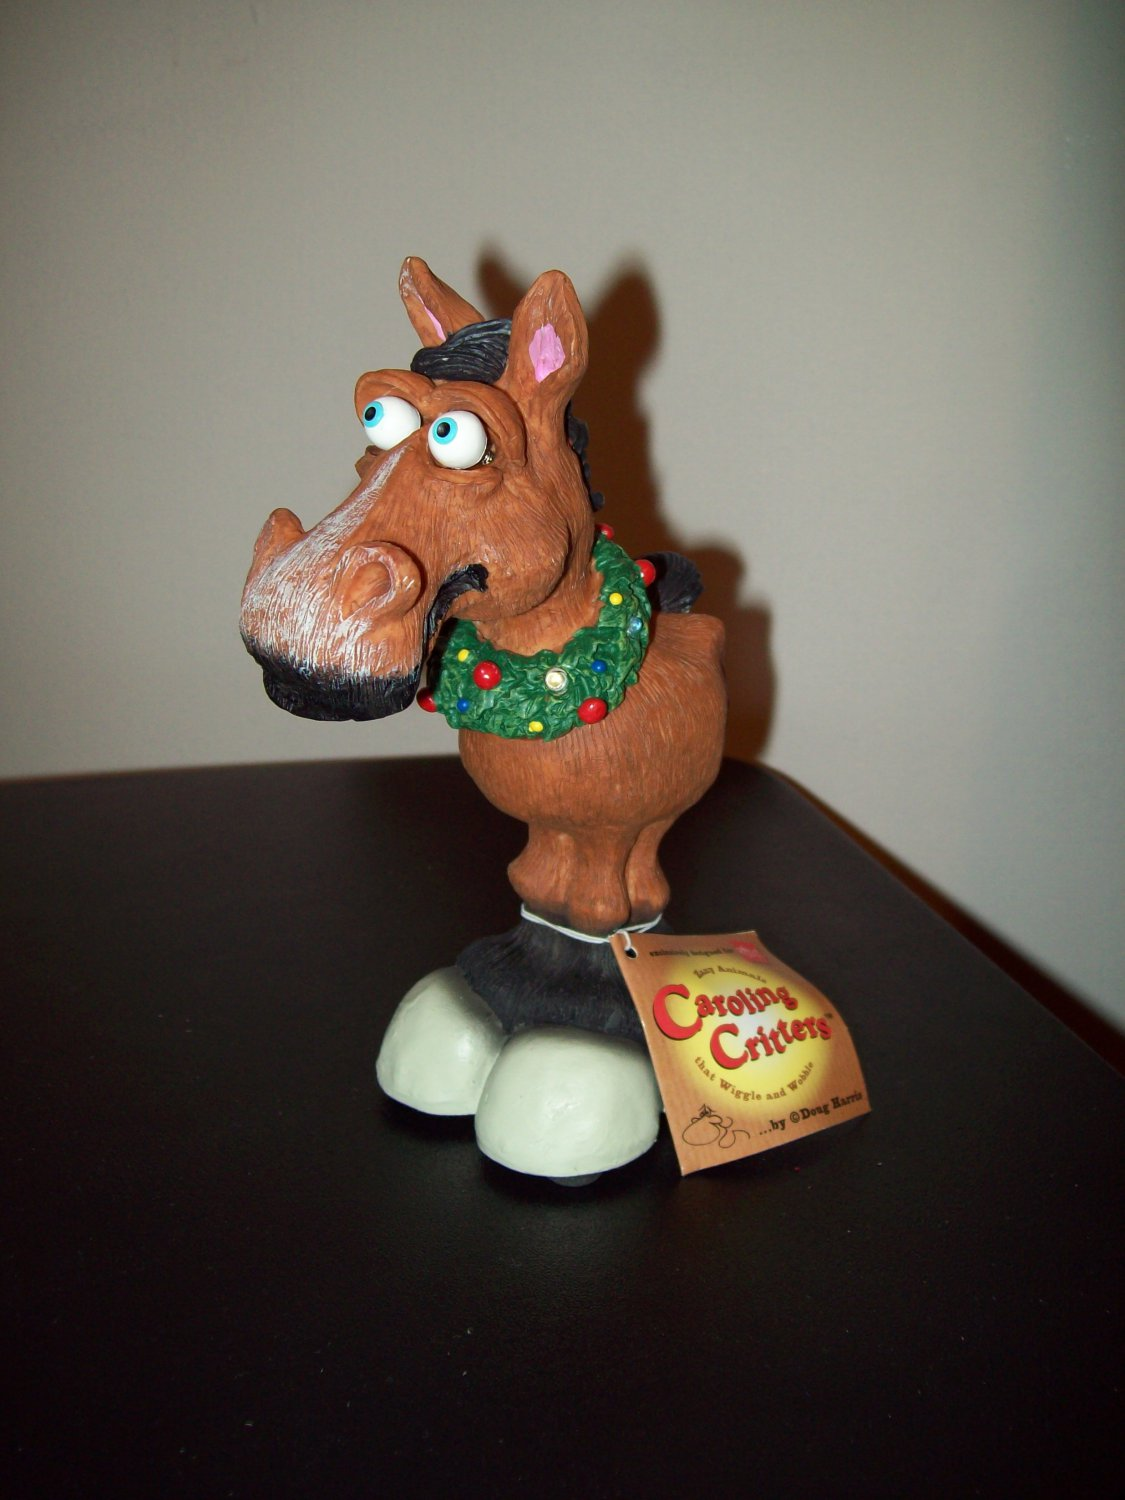 Russ Berrie Caroling Critters - Horace the Horse